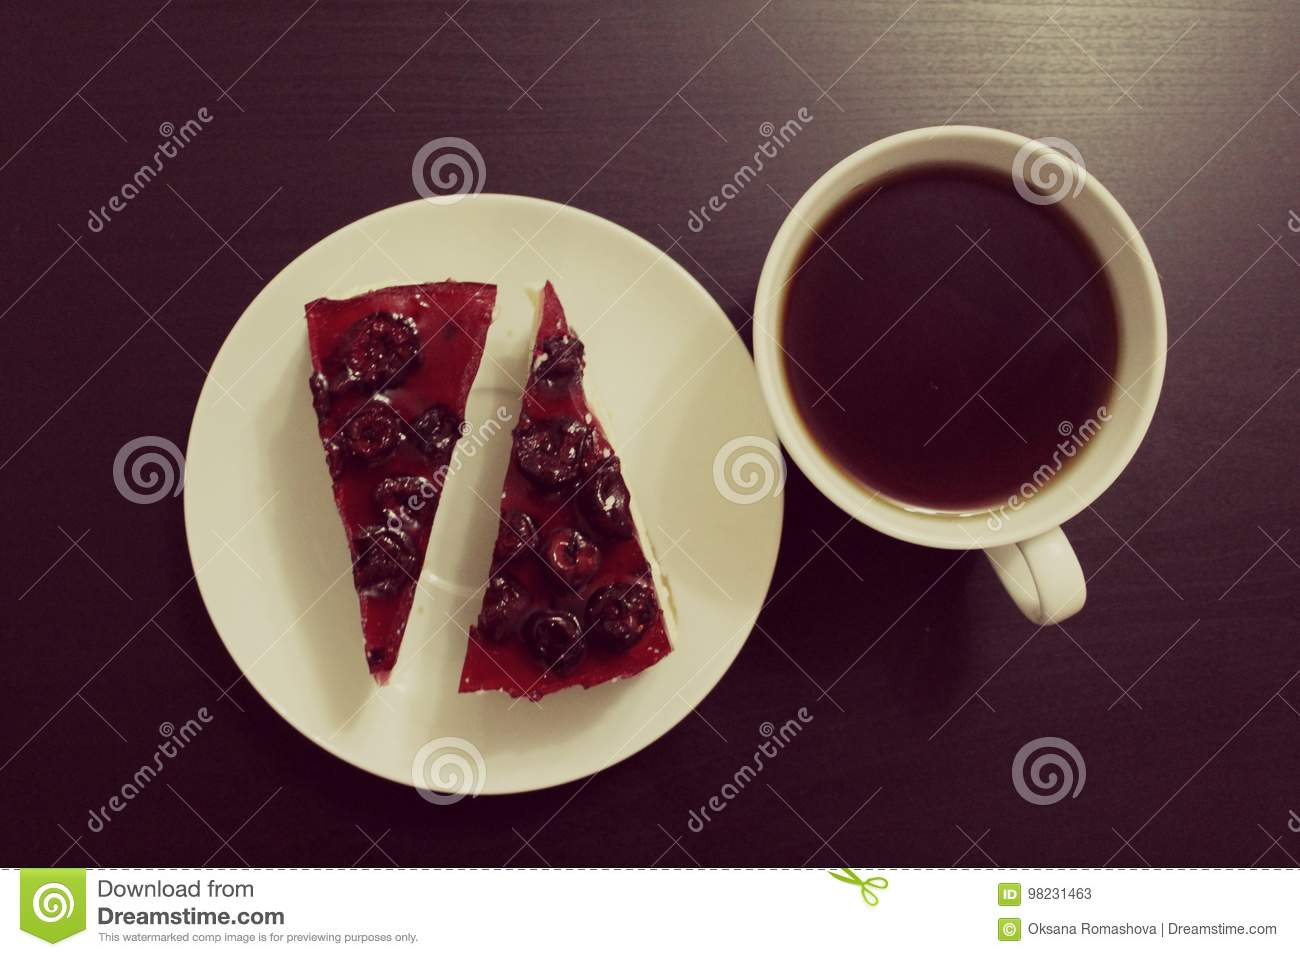 Сheesecake and tea